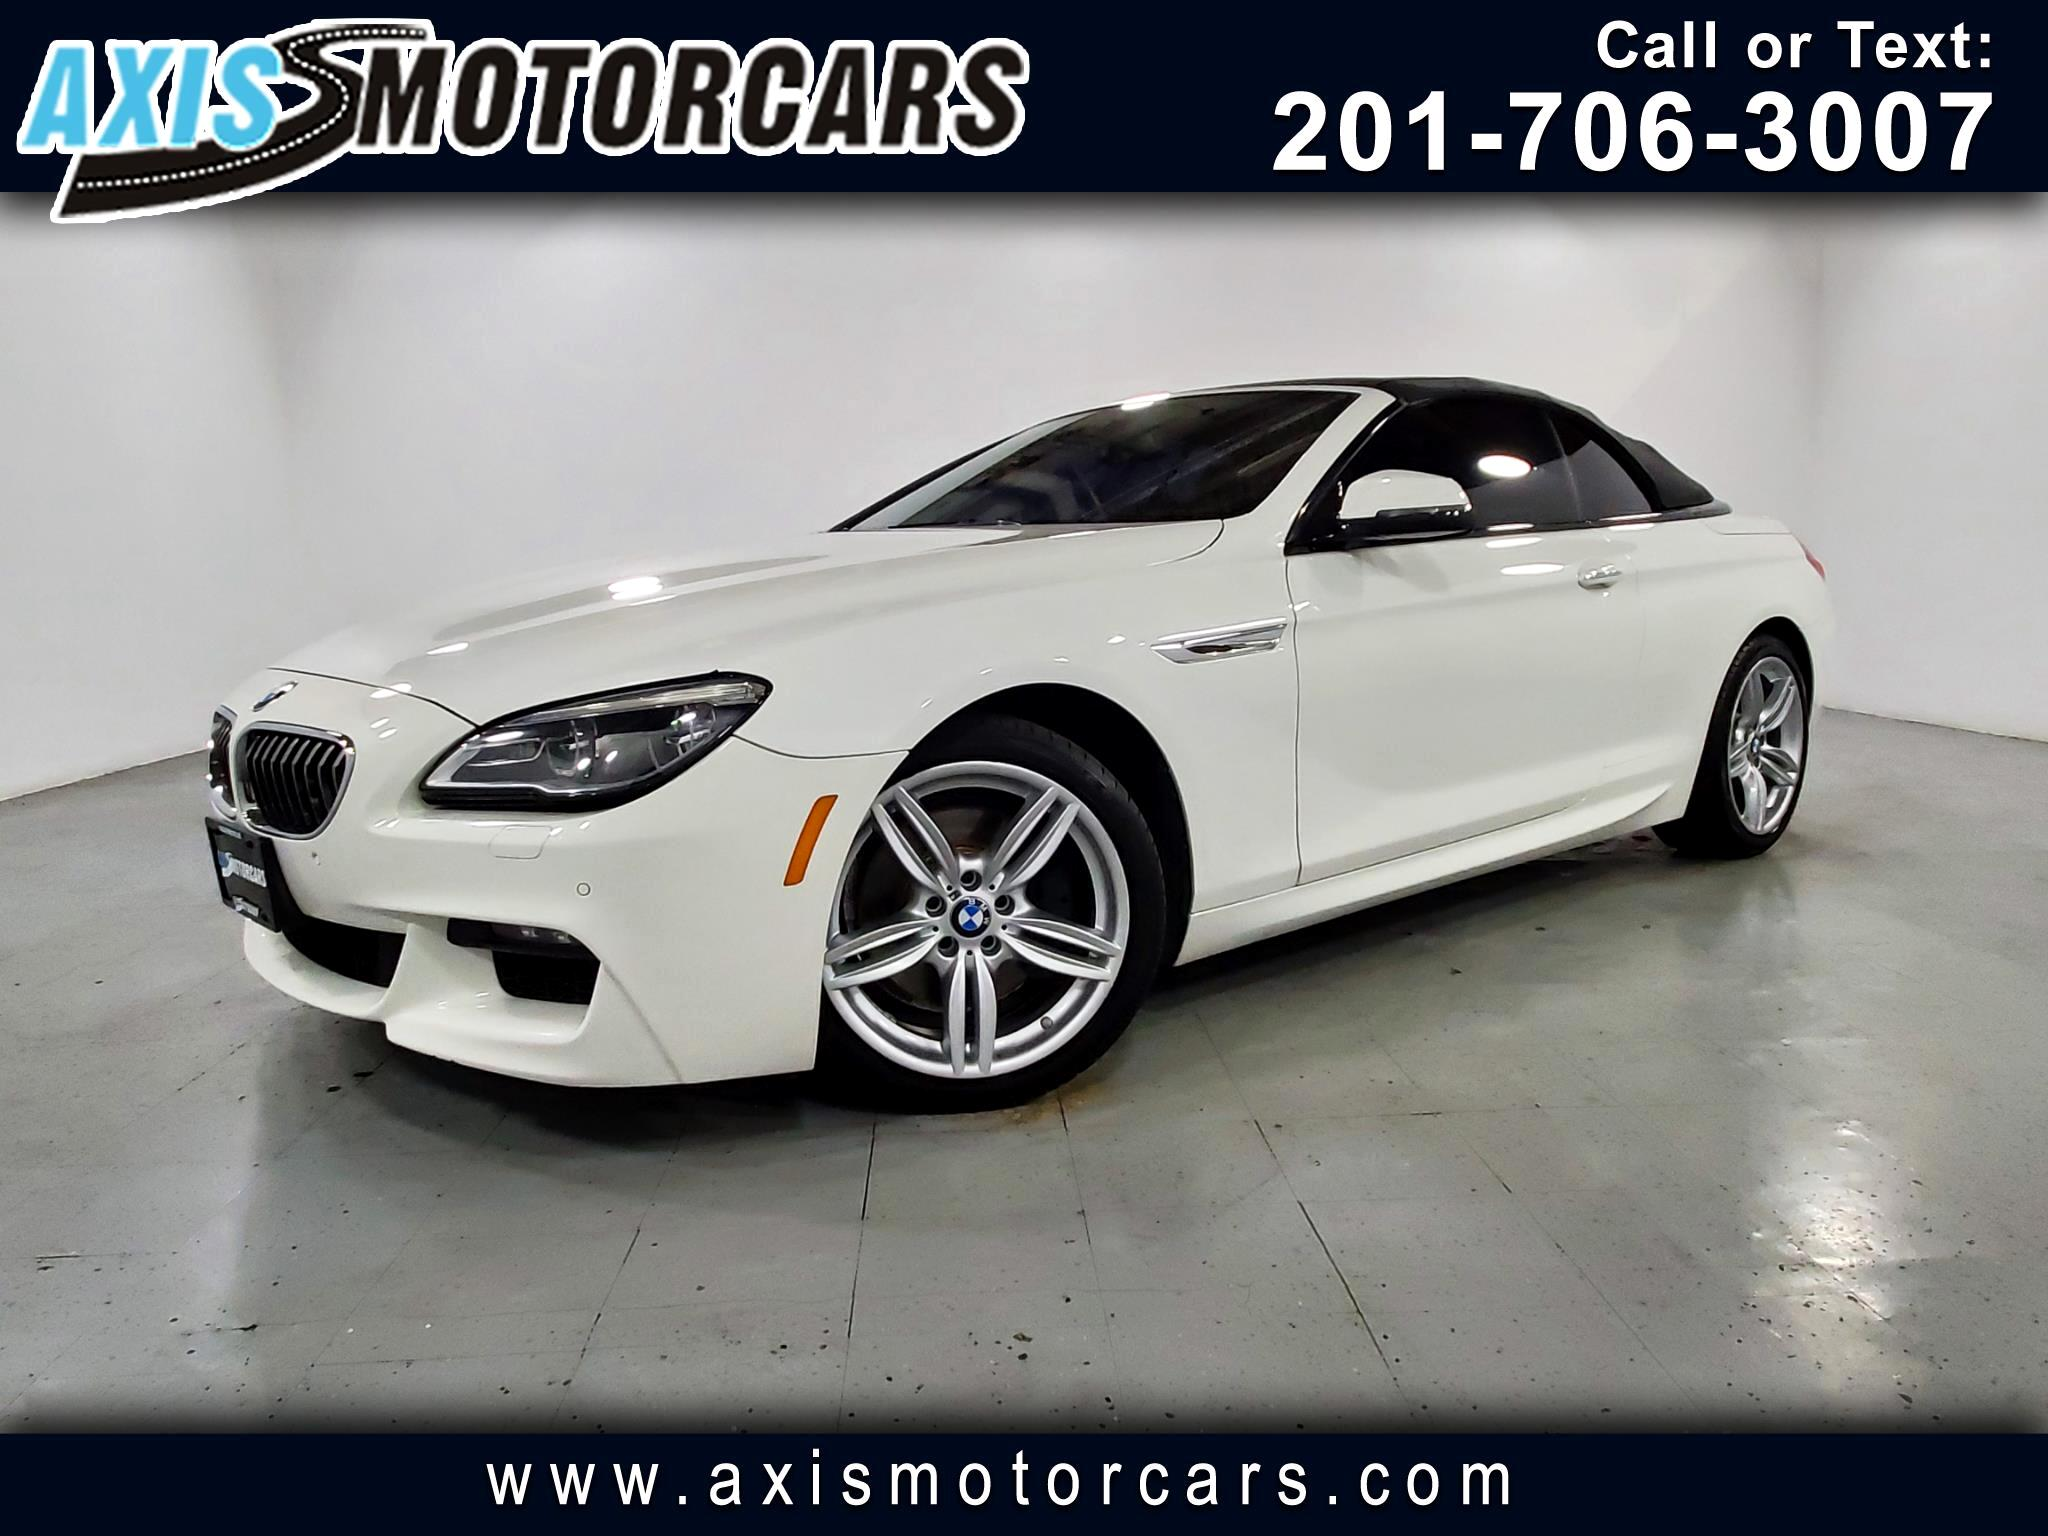 2016 BMW 640i XDRIVE M PKG w/Harman Kardon Sound System